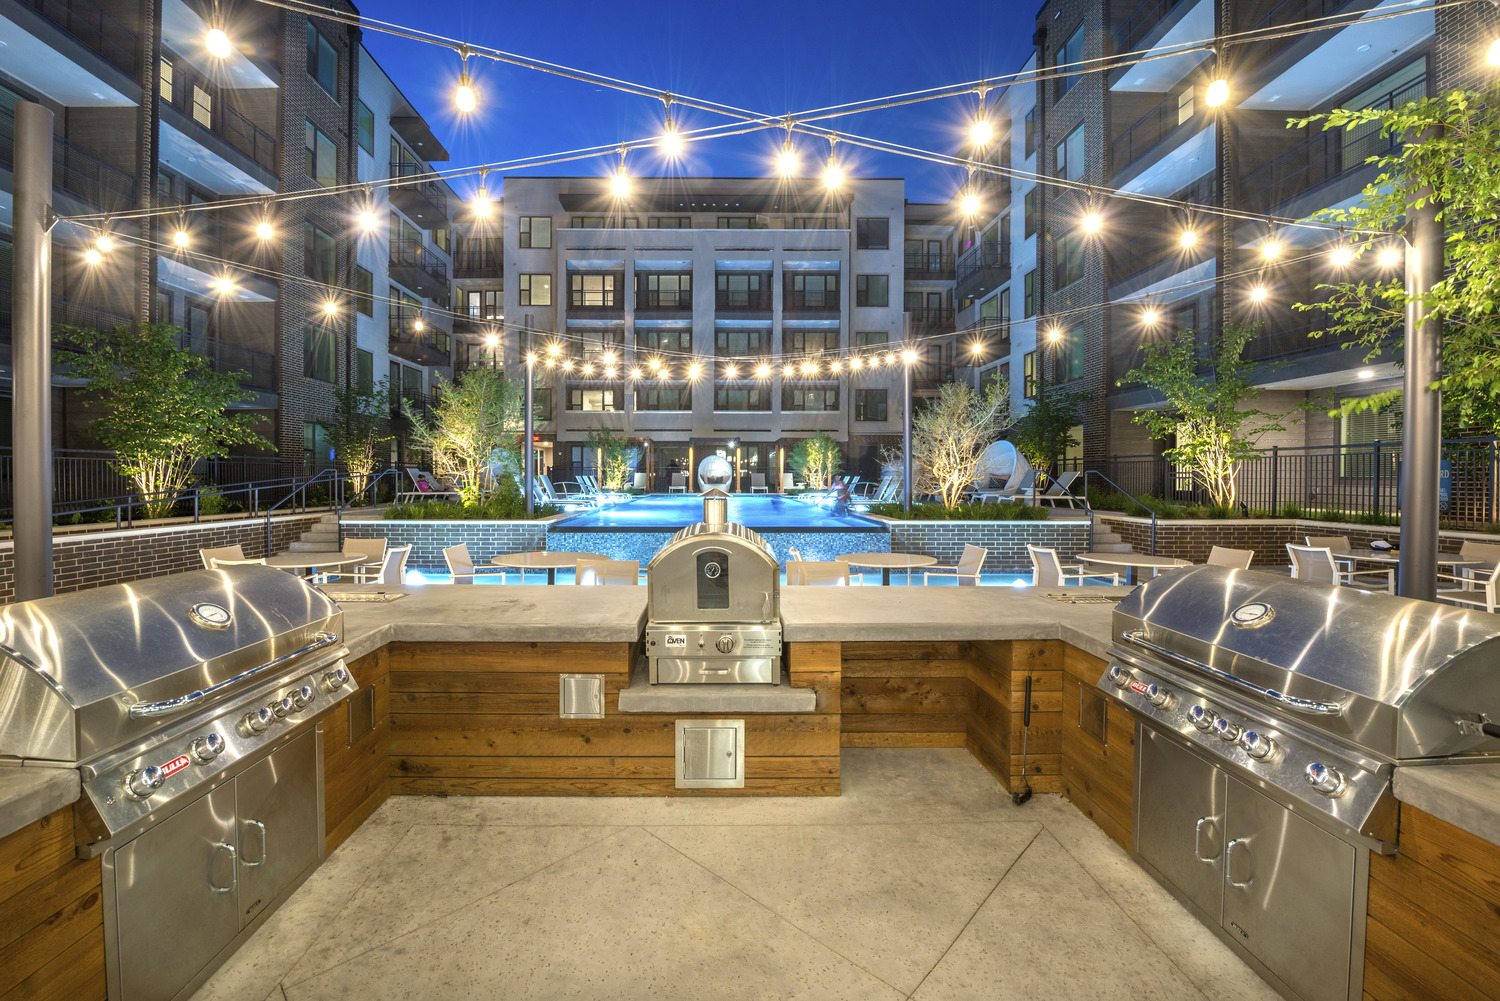 CBG builds The Westerly, a Seven-Story Luxury Community with Rooftop Skydeck in Dallas, TX - Image #7